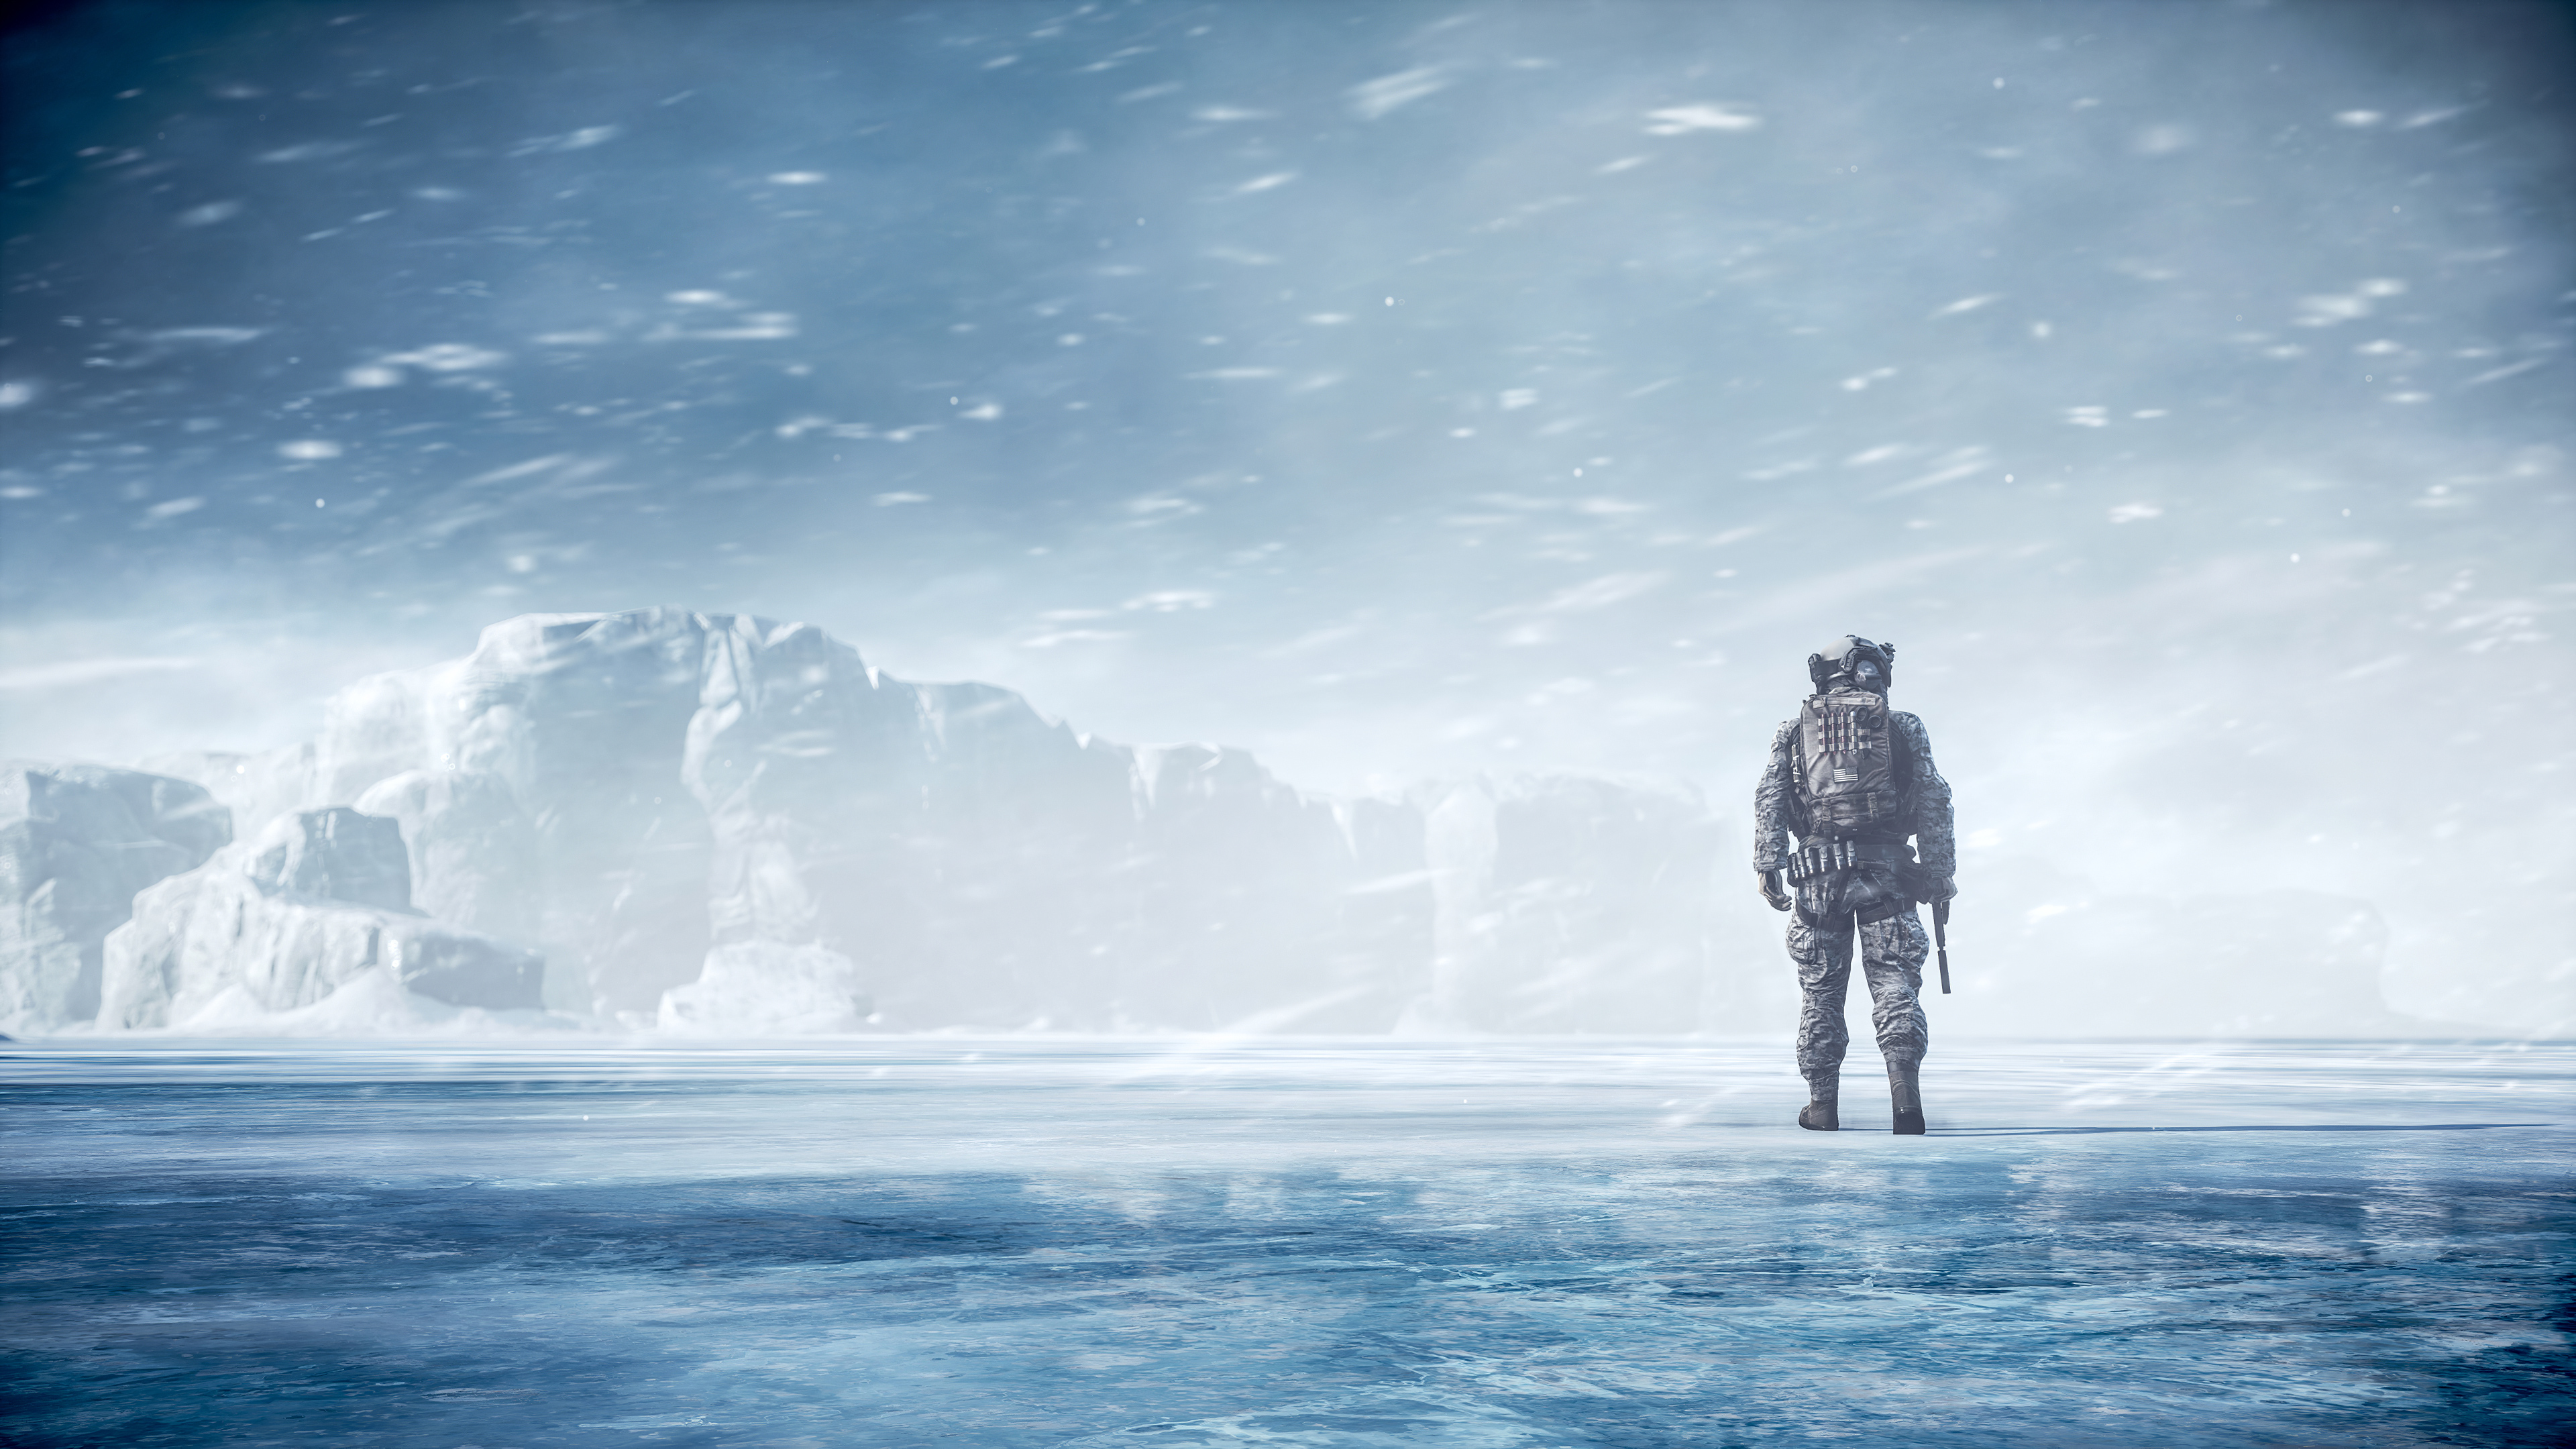 battlefield 4 1581273845 - Battlefield 4 - Battlefield 4 2020 wallpapers, Battlefield 4 2020 game wallpapers 4k, Battlefield 4 2020 4k wallpapers